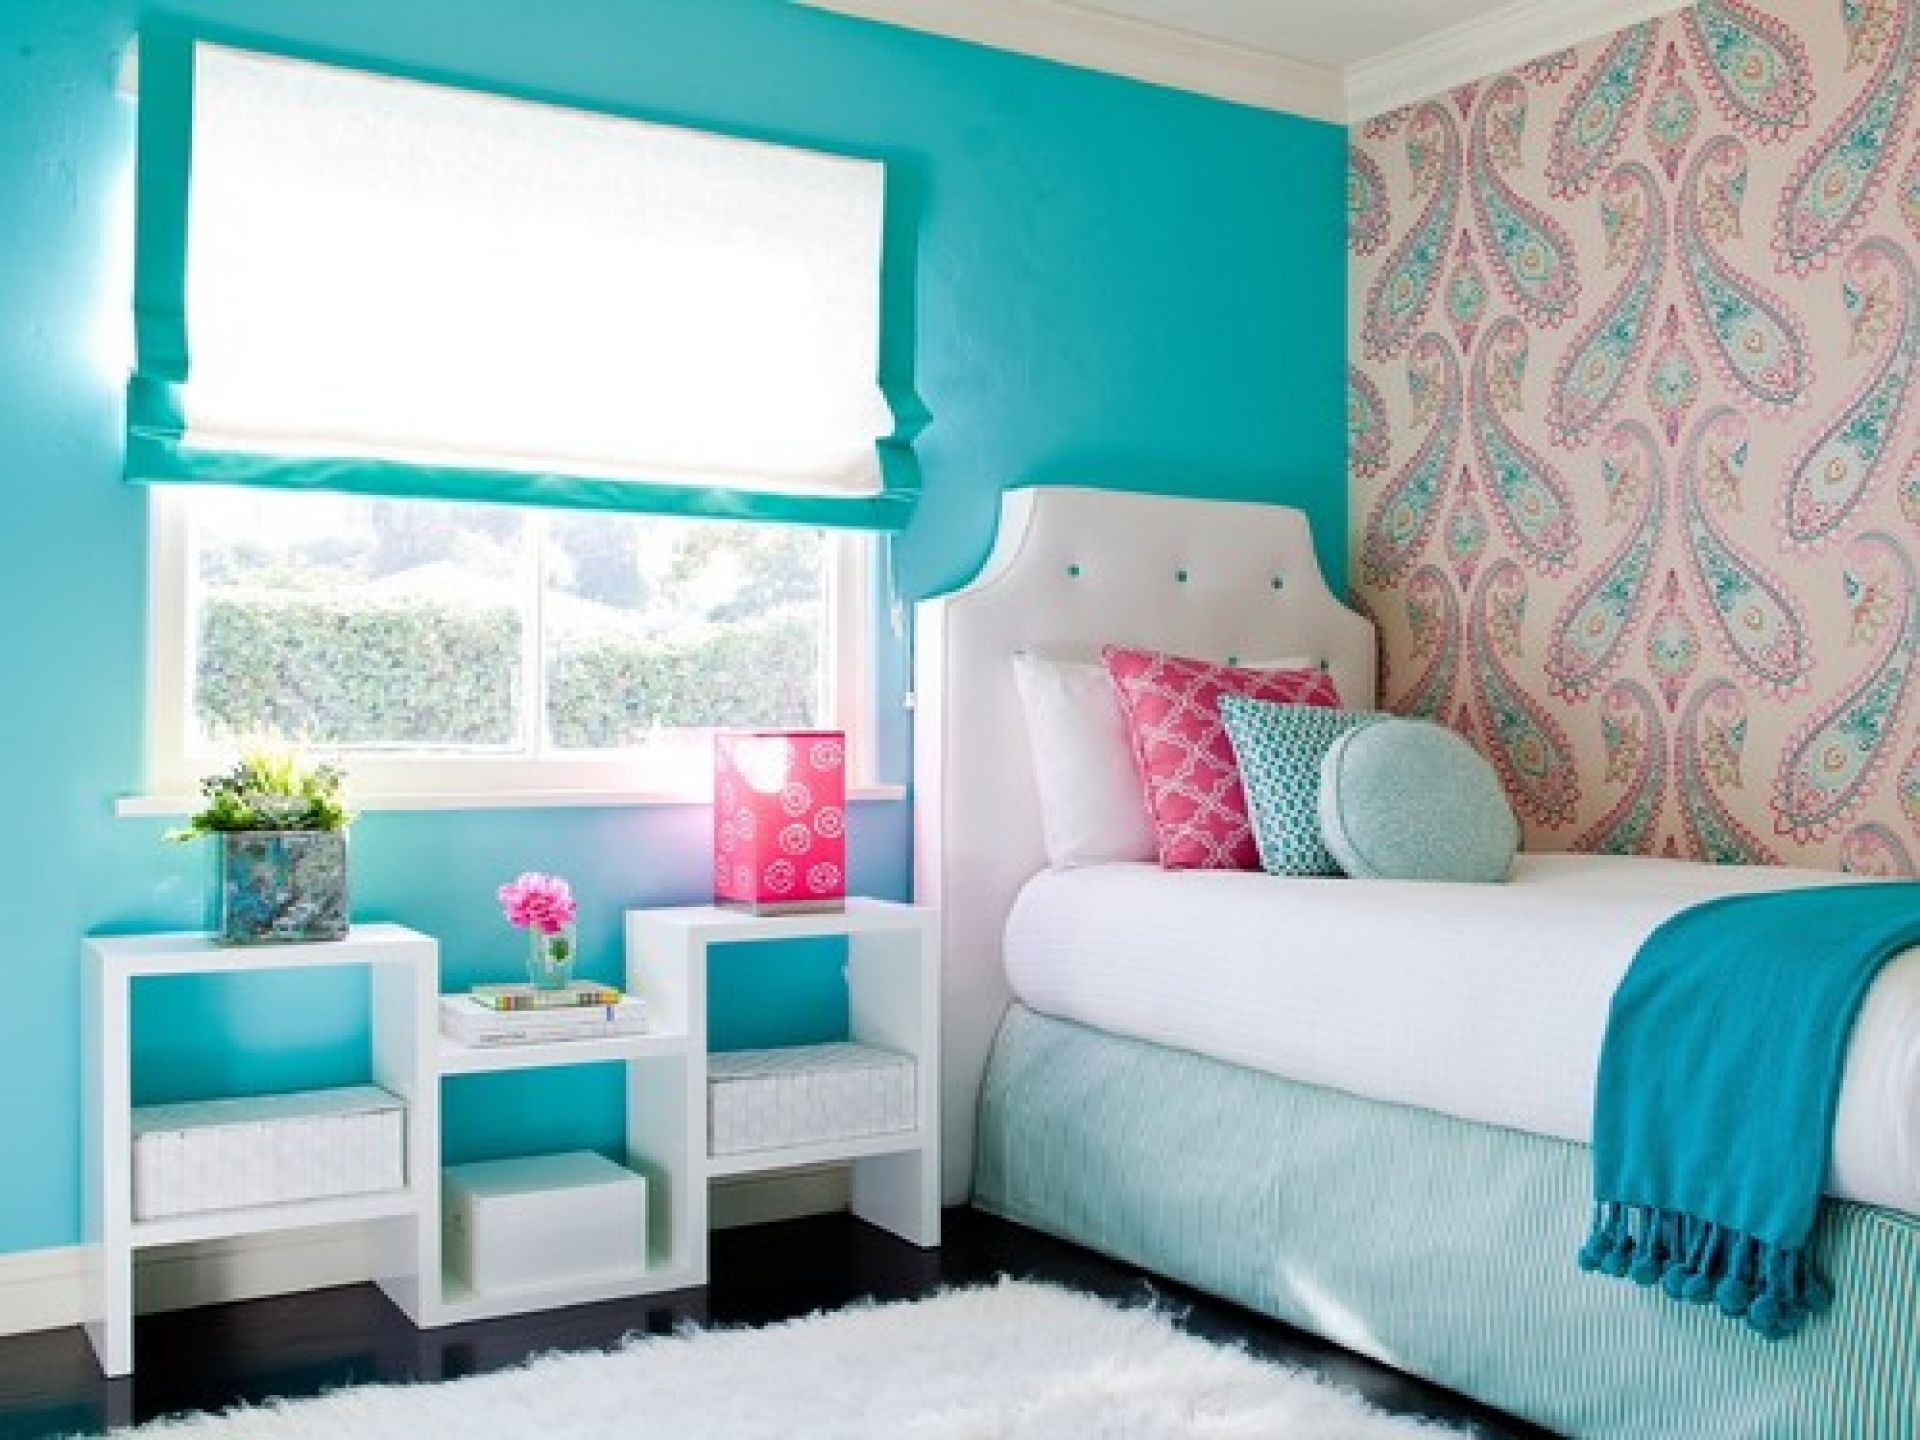 Simple Design Comfy Room Colors Teenage Girl Bedroom Wall Paint Ideas For Bedrooms Girls